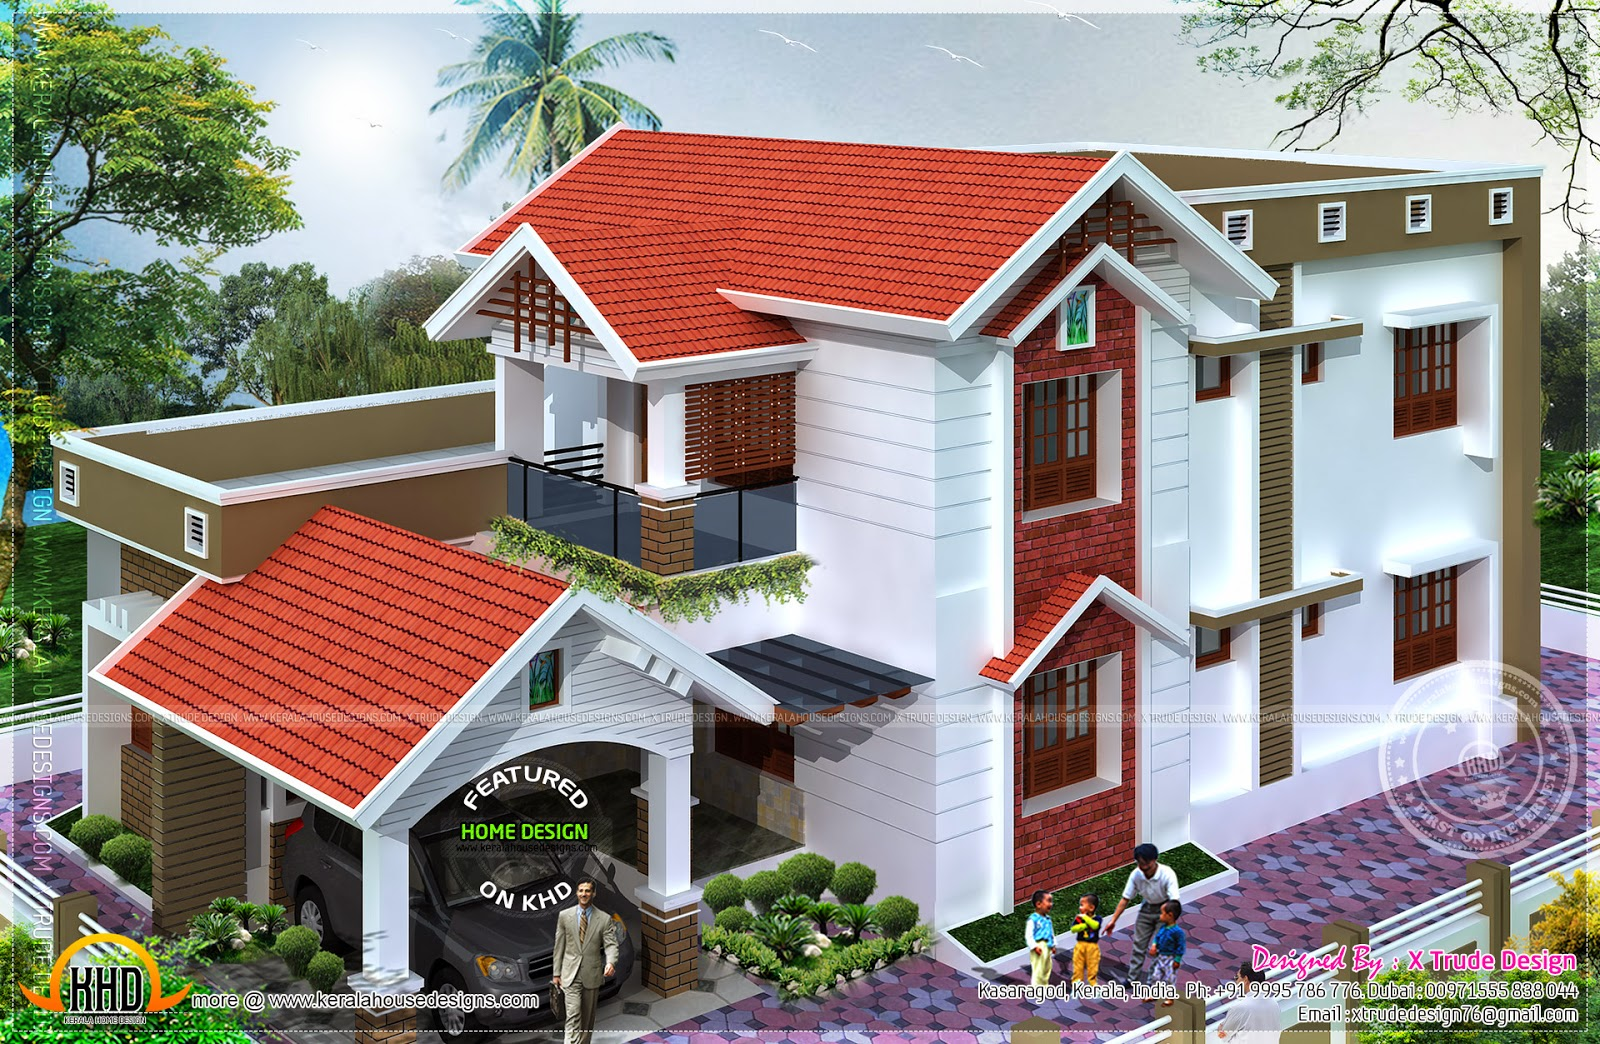 2401 square feet nice house renderings kerala home design and floor plans - Nice house designs ...